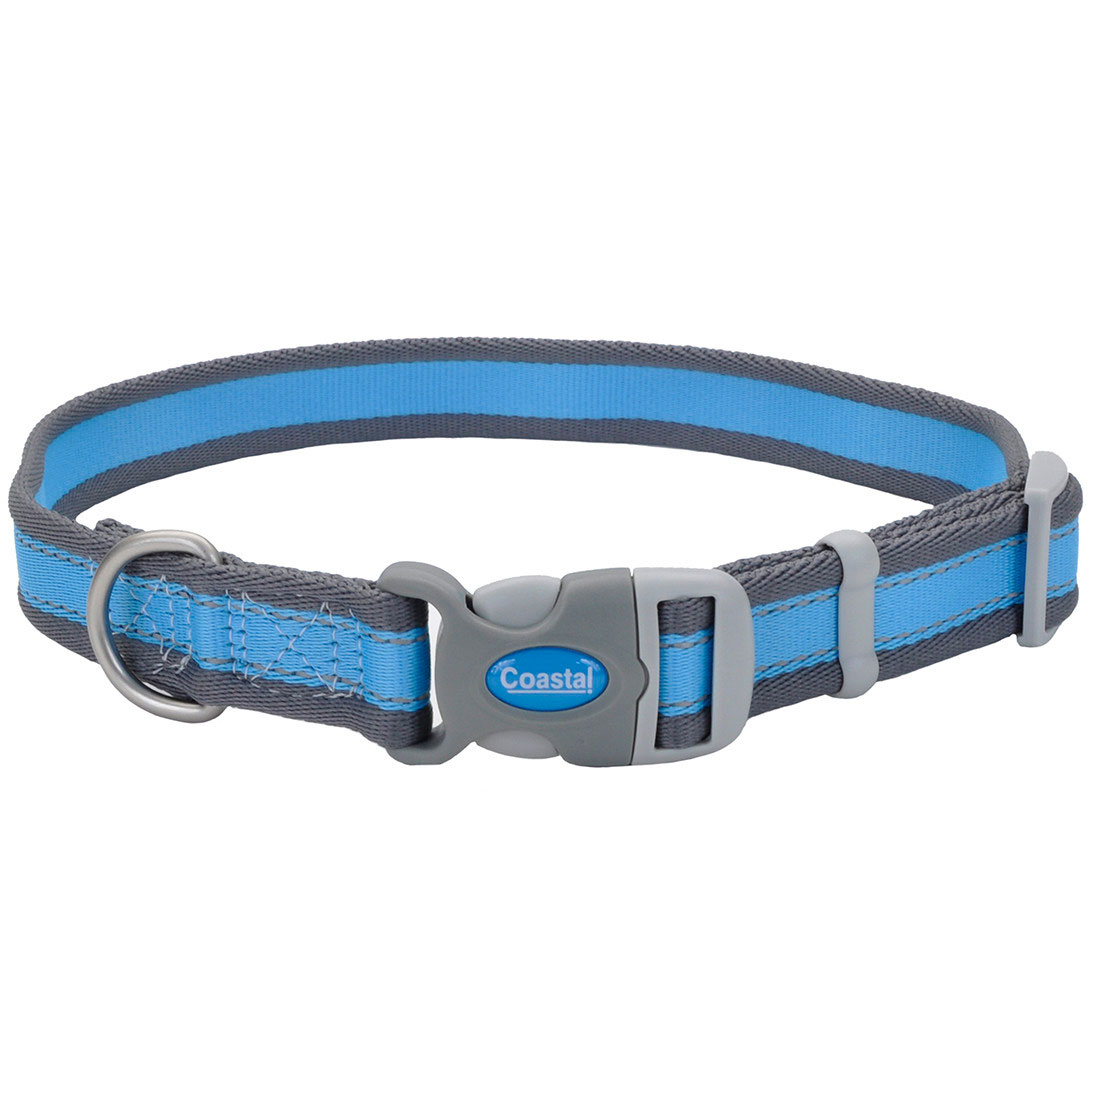 Pro Reflective Adjustable Dog Collar, Bright Blue with Grey, 1-inx14-20-in